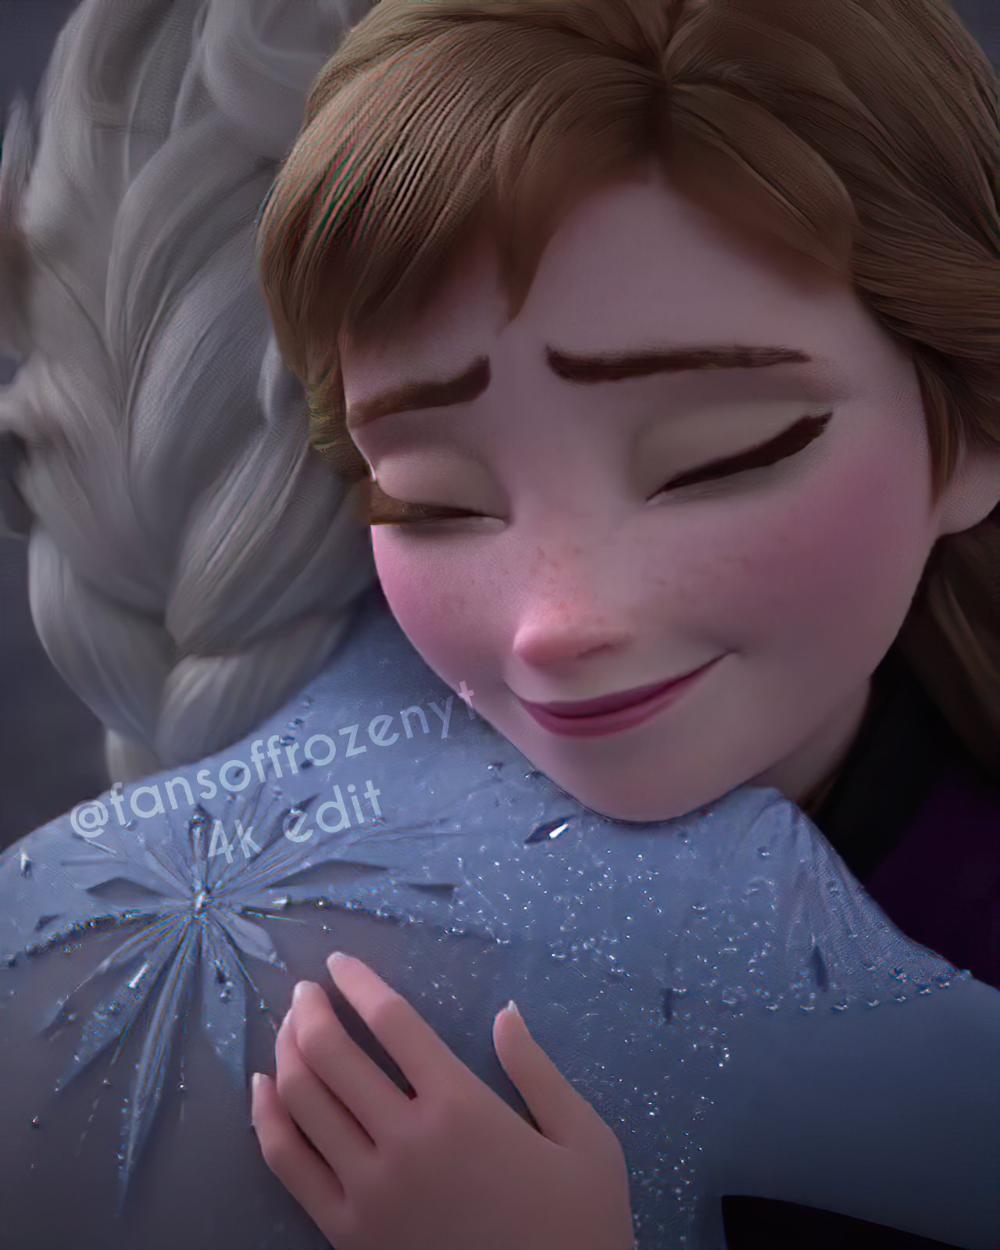 Frozen 2 Twitter Search Twitter Frozen Disney Movie Disney Frozen Elsa Disney Princess Frozen